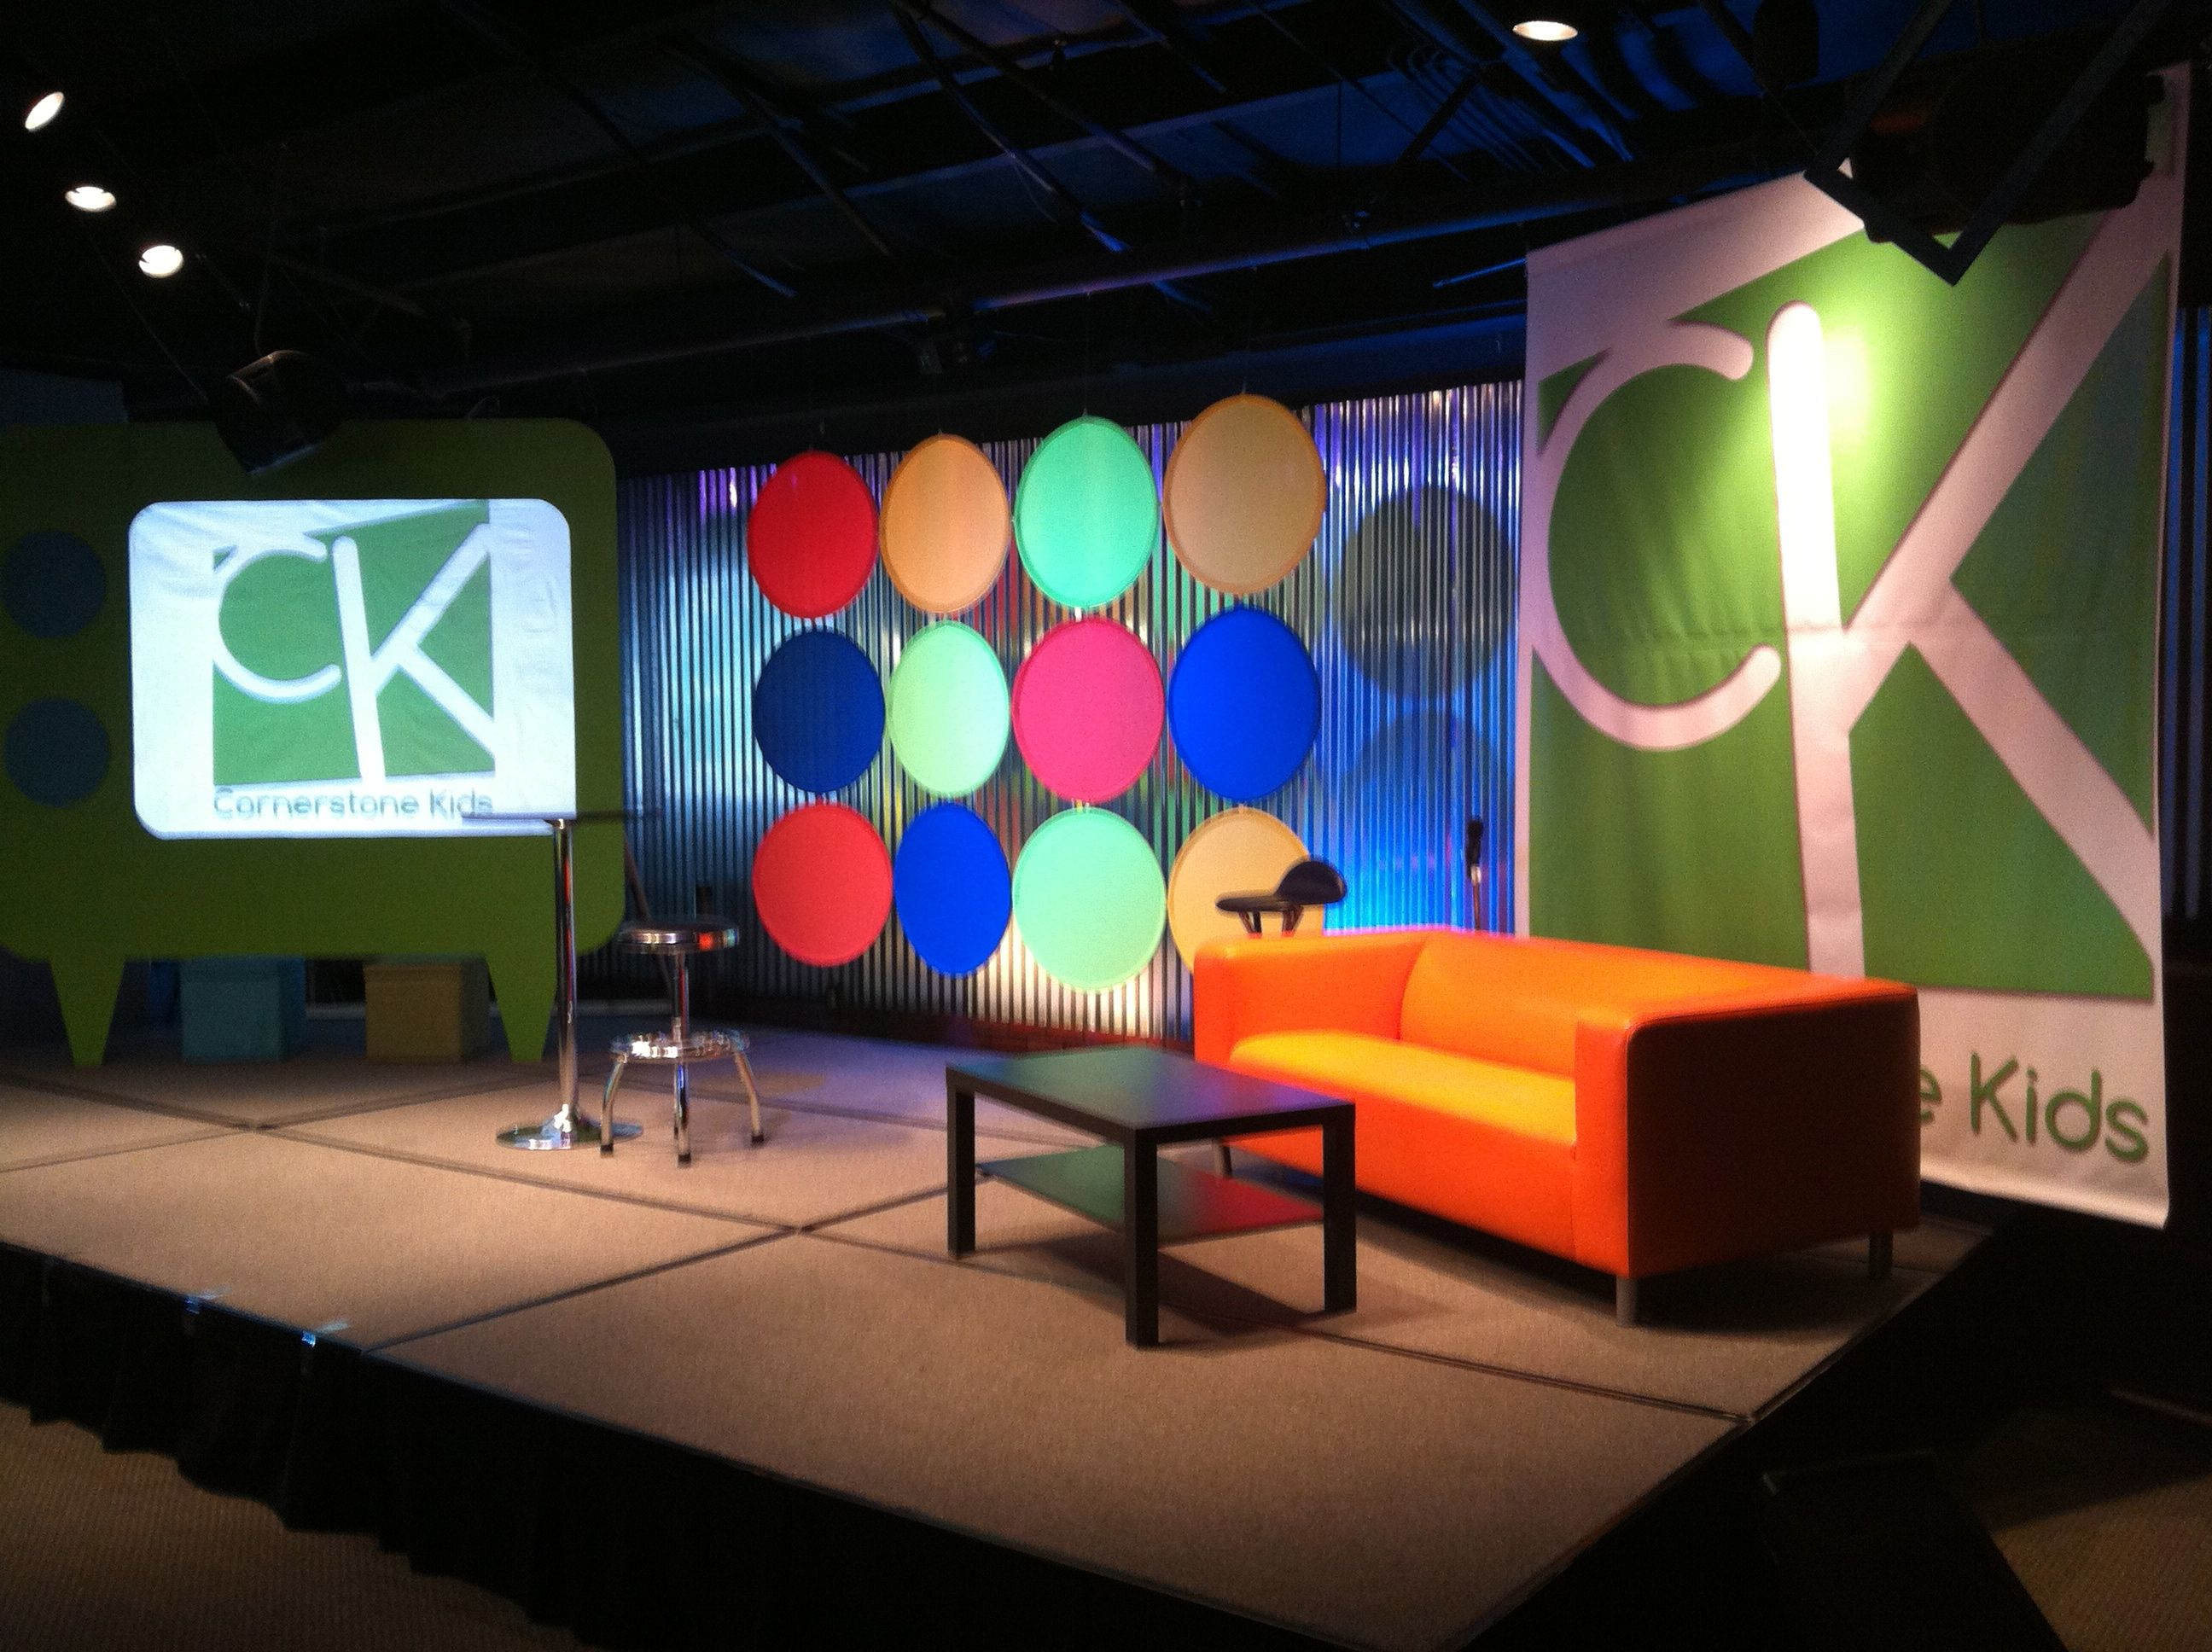 Stage Decoration Ideas Design Stage Design Ideas Church Kids Space Kids Church Stage